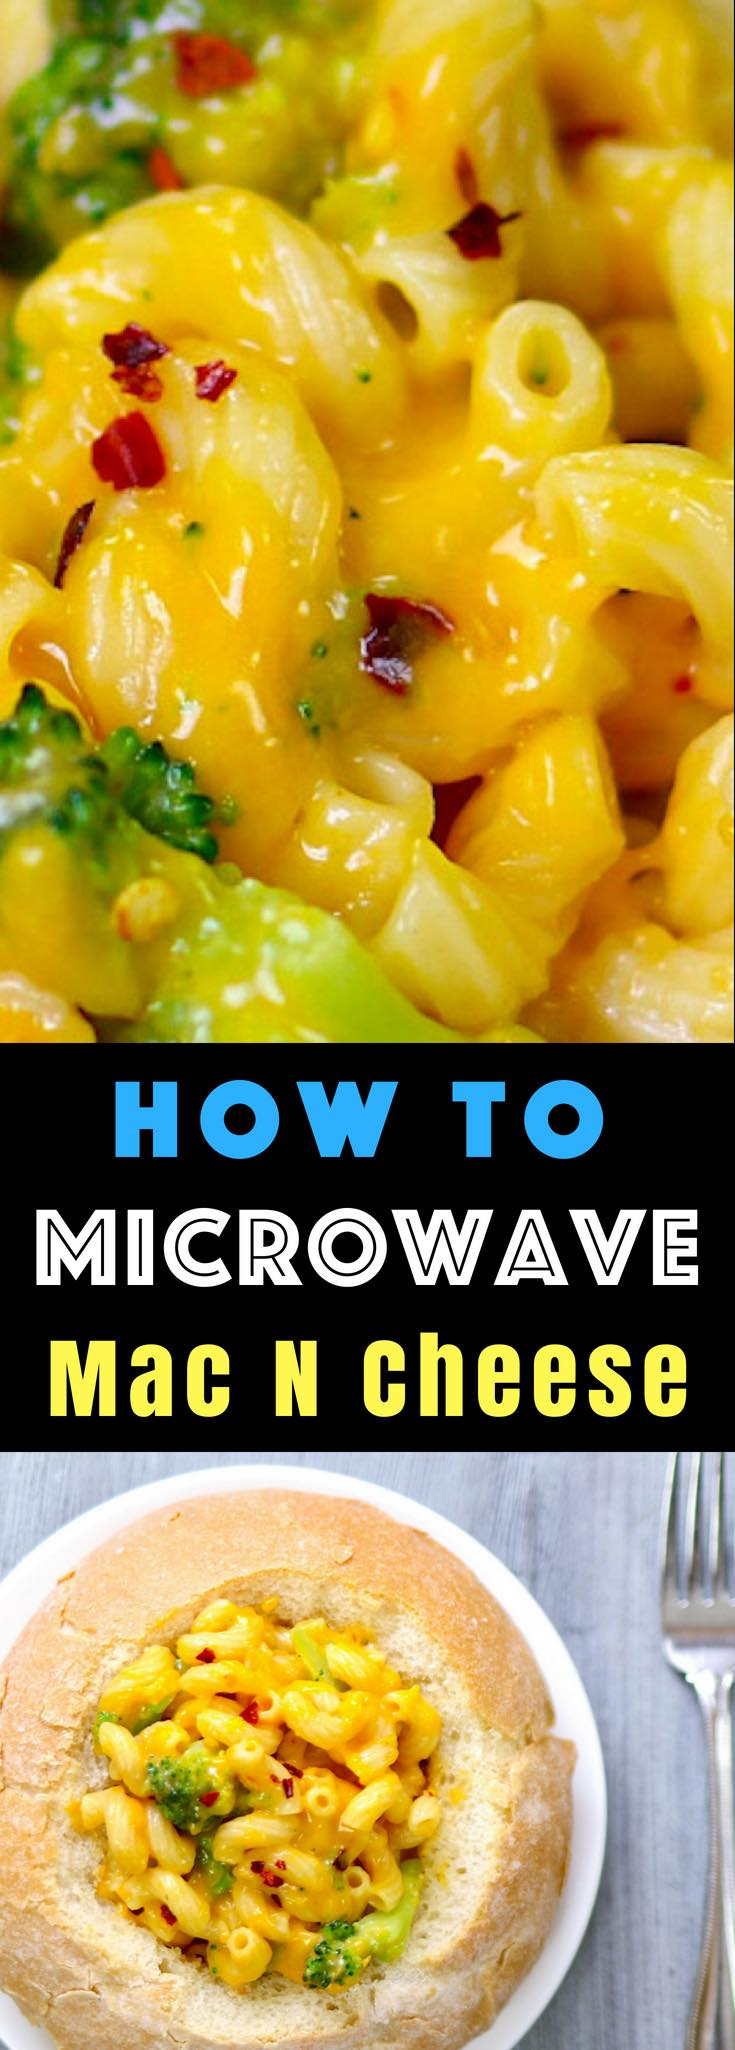 Microwave Mac and Cheese – rich and creamy mac and cheese cooked in microwave from scratch, ready in 15 minutes. A total game changer! All you need is a few simple ingredients: Macaroni pasta, salt, milk, garlic powder and cheddar cheese. Quick, easy and cooked in one bowl. Say goodbye to the dried macaroni boxes! #MicrowaveMacAndCheese #MacNcheese